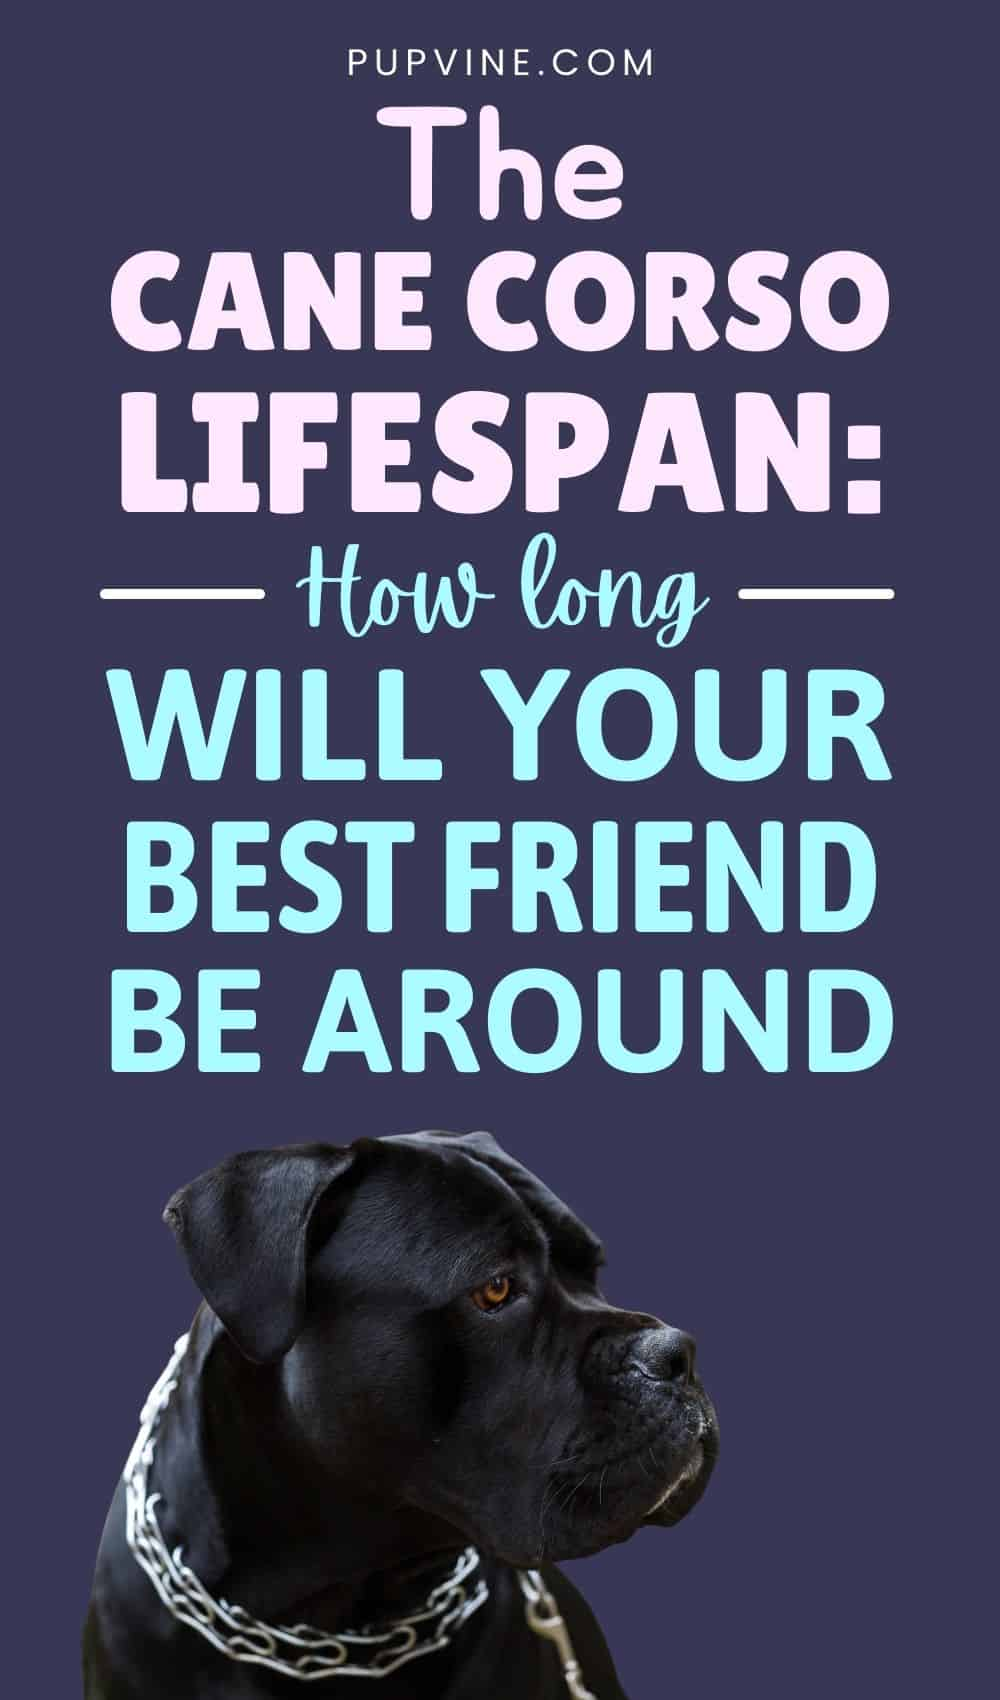 The Cane Corso Lifespan: How Long Will Your Best Friend Be Around